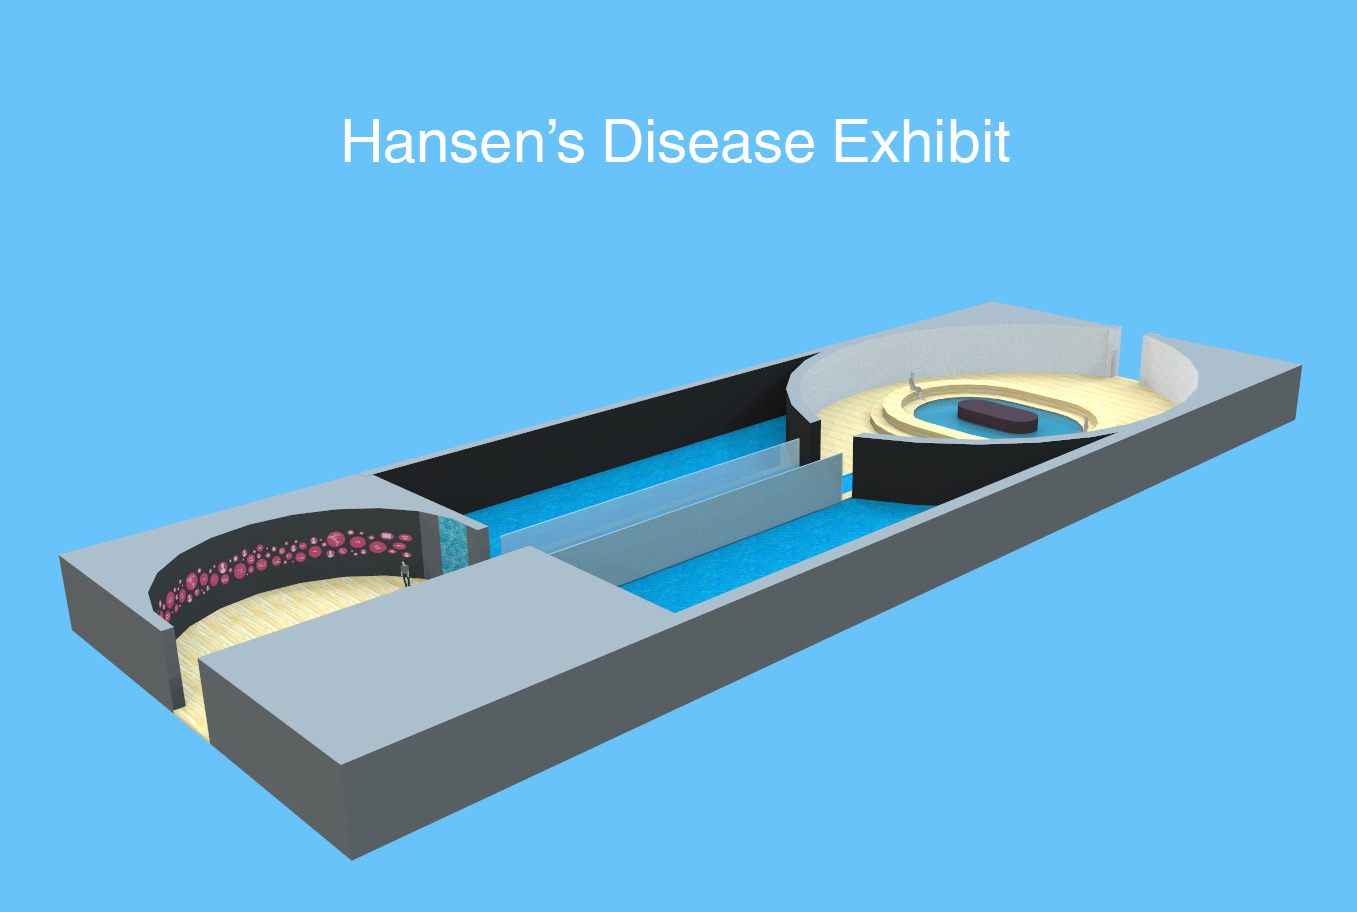 Hansen's Disease Museum Exhibit